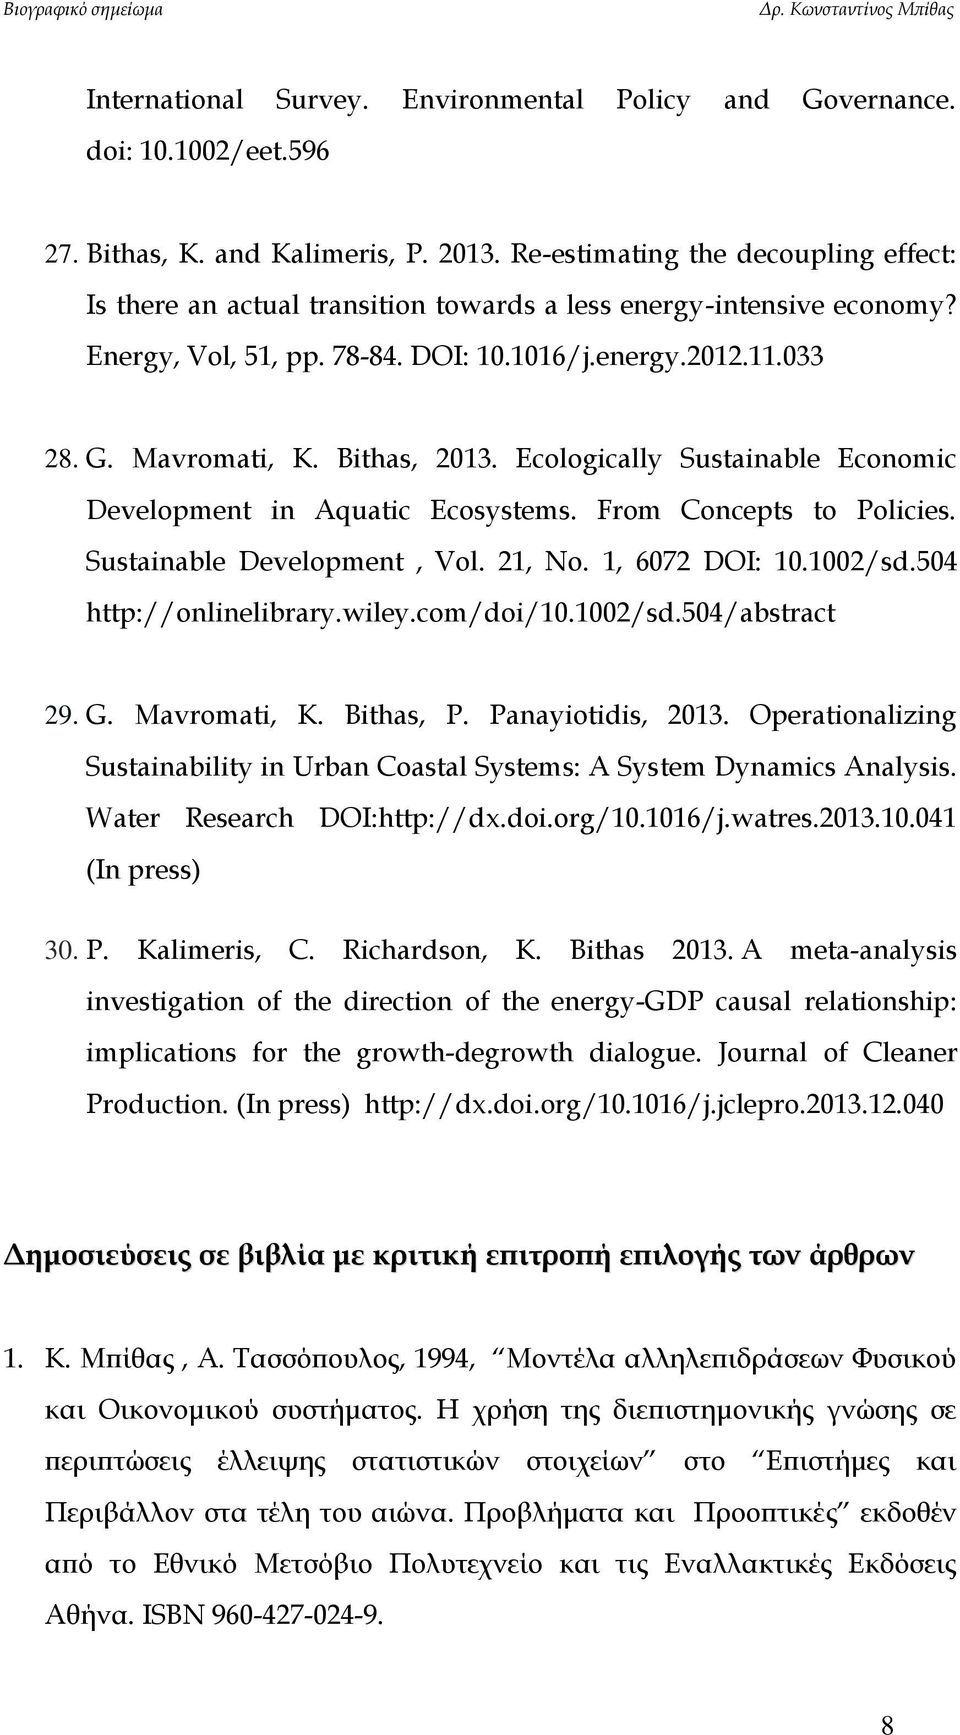 Bithas, 2013. Ecologically Sustainable Economic Development in Aquatic Ecosystems. From Concepts to Policies. Sustainable Development, Vol. 21, No. 1, 6072 DOI: 10.1002/sd.504 http://onlinelibrary.